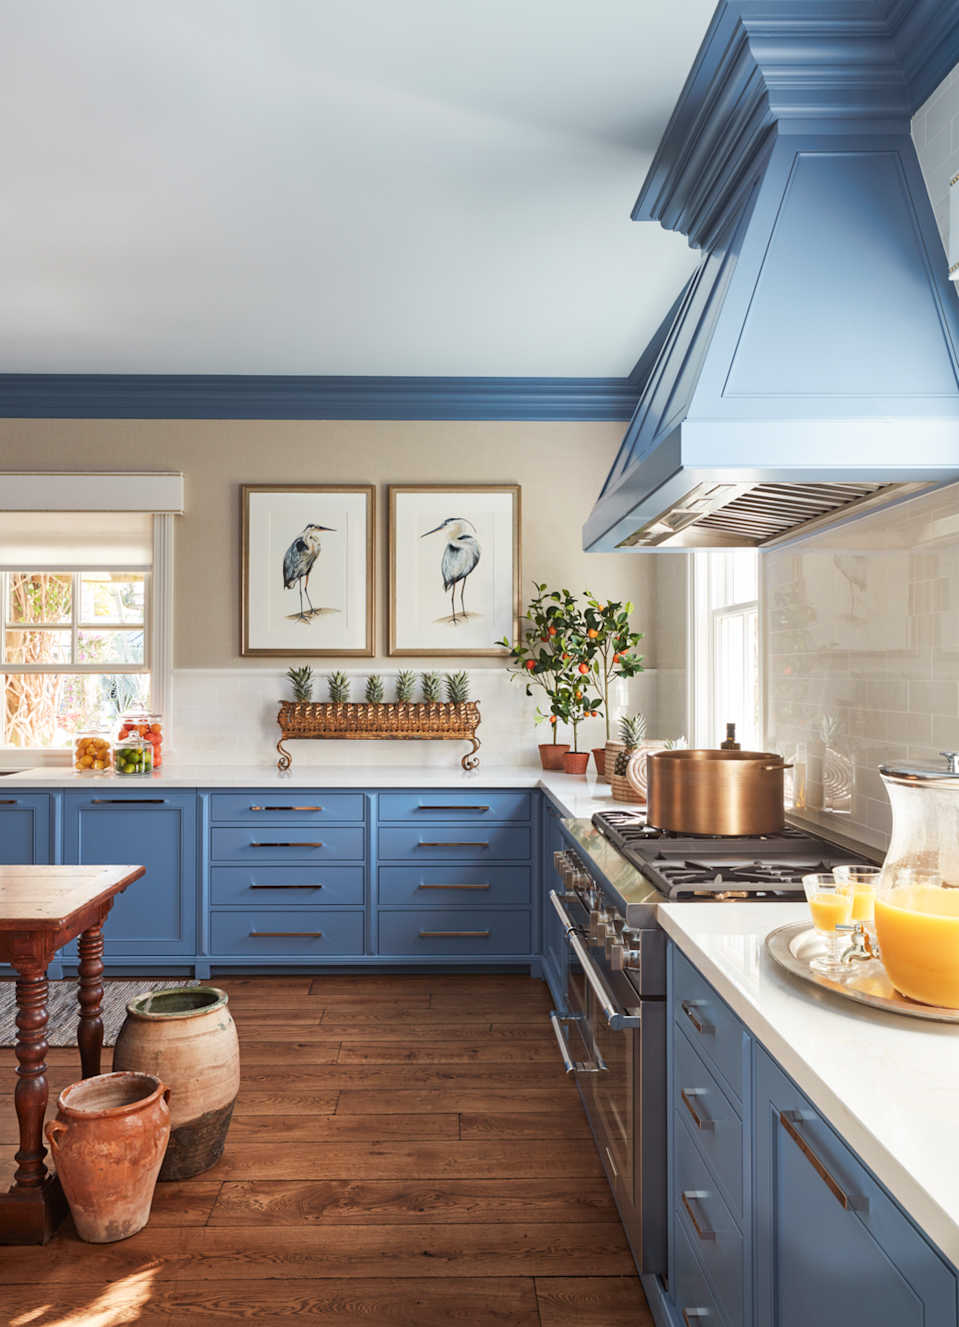 """<p>This blue may not be of this earth, but it is the color of the sky and the ocean, and is nonetheless comforting to the soul. Connecticut designer <a href=""""http://sarahblankdesignstudio.com/"""" rel=""""nofollow noopener"""" target=""""_blank"""" data-ylk=""""slk:Sarah Blank"""" class=""""link rapid-noclick-resp"""">Sarah Blank</a> creatively inverts the traditional use of colors and paints the cabinets an ethereal Blue Dragon by Benjamin Moore while leaving the walls neutral with <a href=""""https://www.carlisleco.com/"""" rel=""""nofollow noopener"""" target=""""_blank"""" data-ylk=""""slk:Carlisle and Co."""" class=""""link rapid-noclick-resp"""">Carlisle and Co.</a> linen wallpaper at the <a href=""""https://www.veranda.com/decorating-ideas/a30641052/kips-bay-decorator-show-house-palm-beach-2020/"""" rel=""""nofollow noopener"""" target=""""_blank"""" data-ylk=""""slk:Kips Bay 2020 Show"""" class=""""link rapid-noclick-resp"""">Kips Bay 2020 Show</a> house in Palm Beach.</p><p><a class=""""link rapid-noclick-resp"""" href=""""https://www.benjaminmoore.com/en-us/color-overview/find-your-color/color/810/blue-dragon?color=810"""" rel=""""nofollow noopener"""" target=""""_blank"""" data-ylk=""""slk:Get the Look"""">Get the Look</a></p>"""